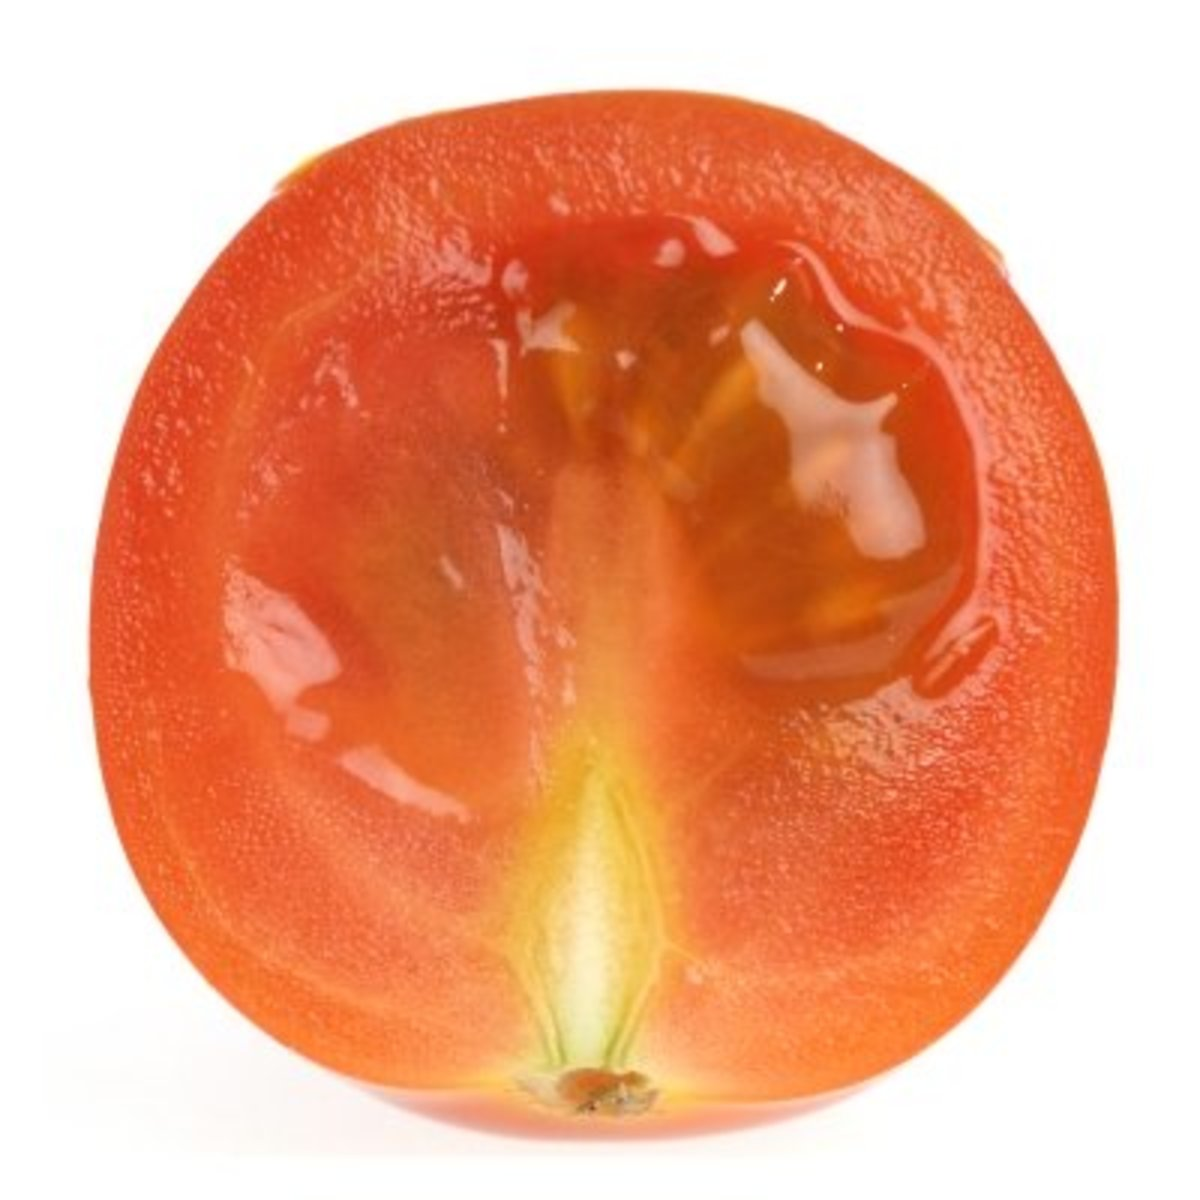 Tomato juice helps reduce redness caused by pimples and zits.